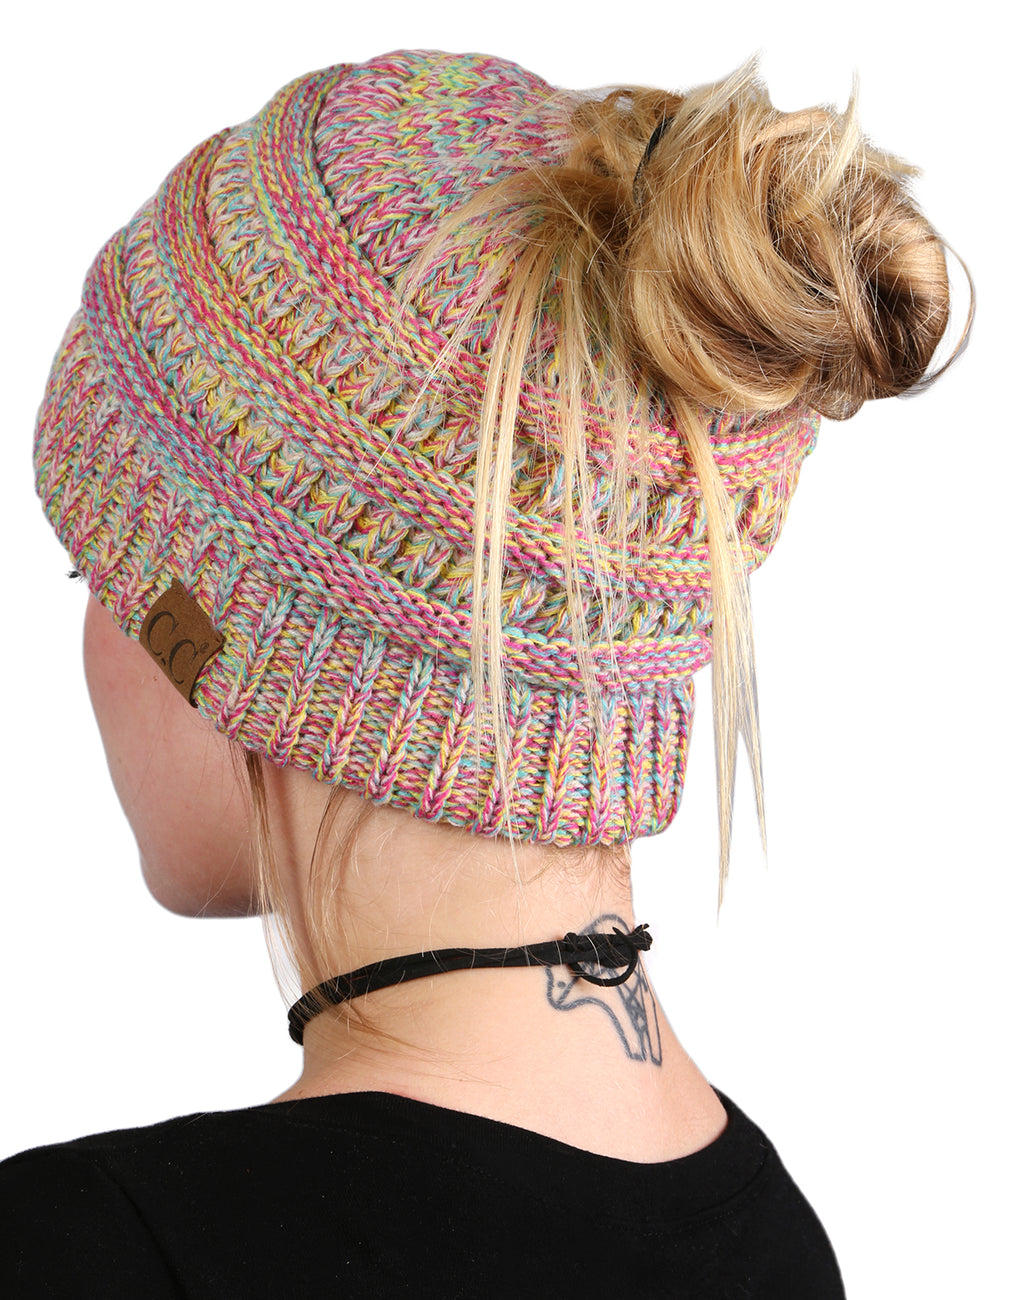 C.C BeanieTail Bundled With Matching Infinity Scarf - Rainbow #11